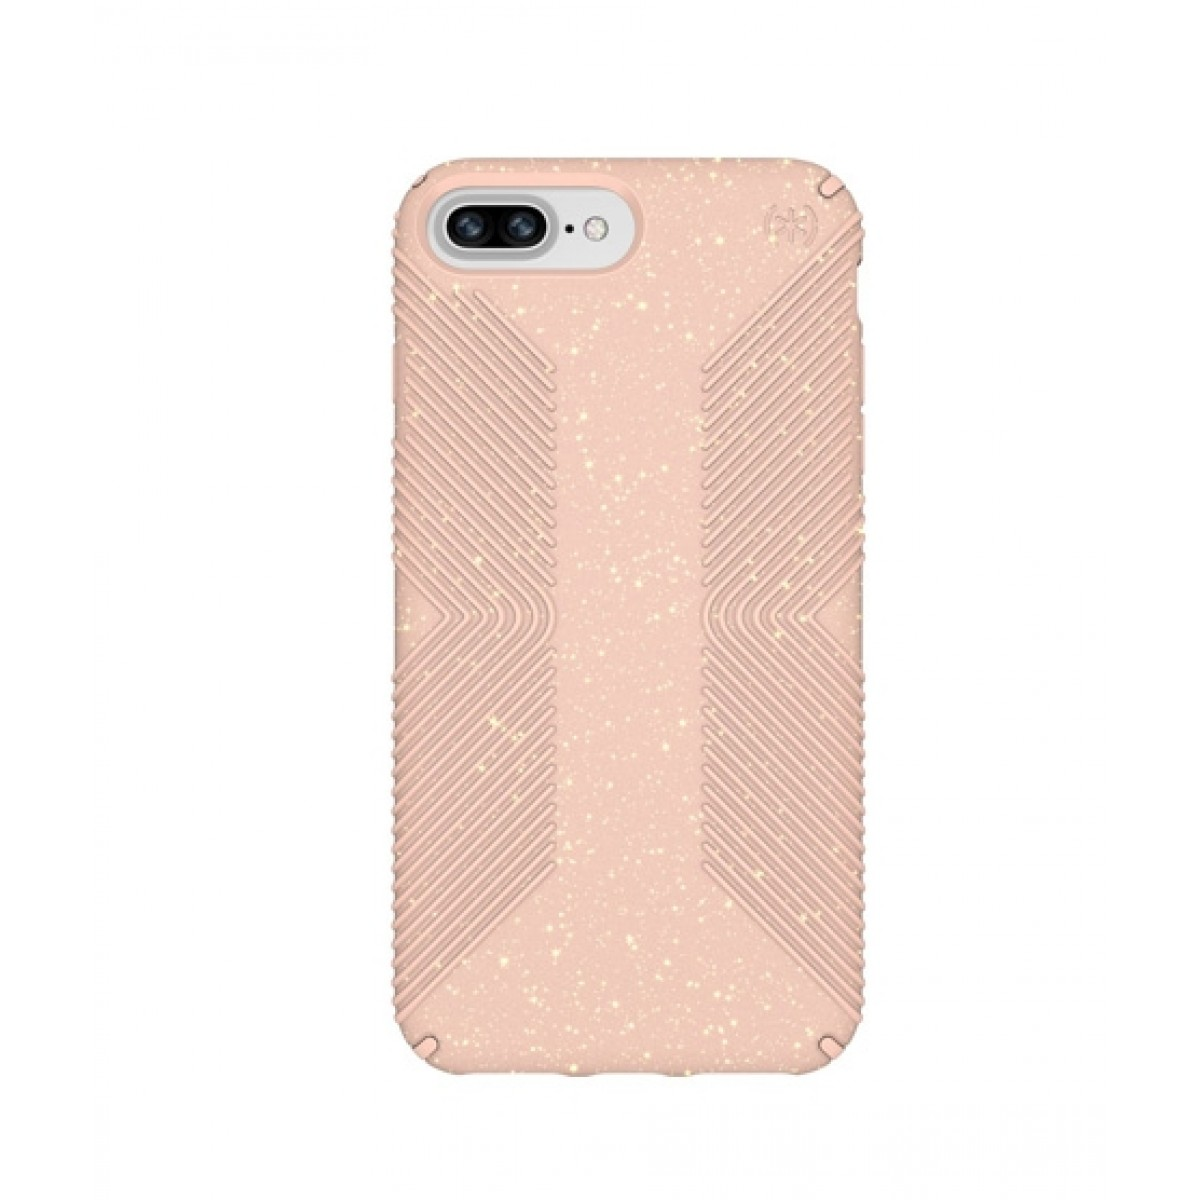 newest c49c5 8bd8f Speck Presidio Grip + Glitter Bella Pink/Gold Case For iPhone 8 Plus